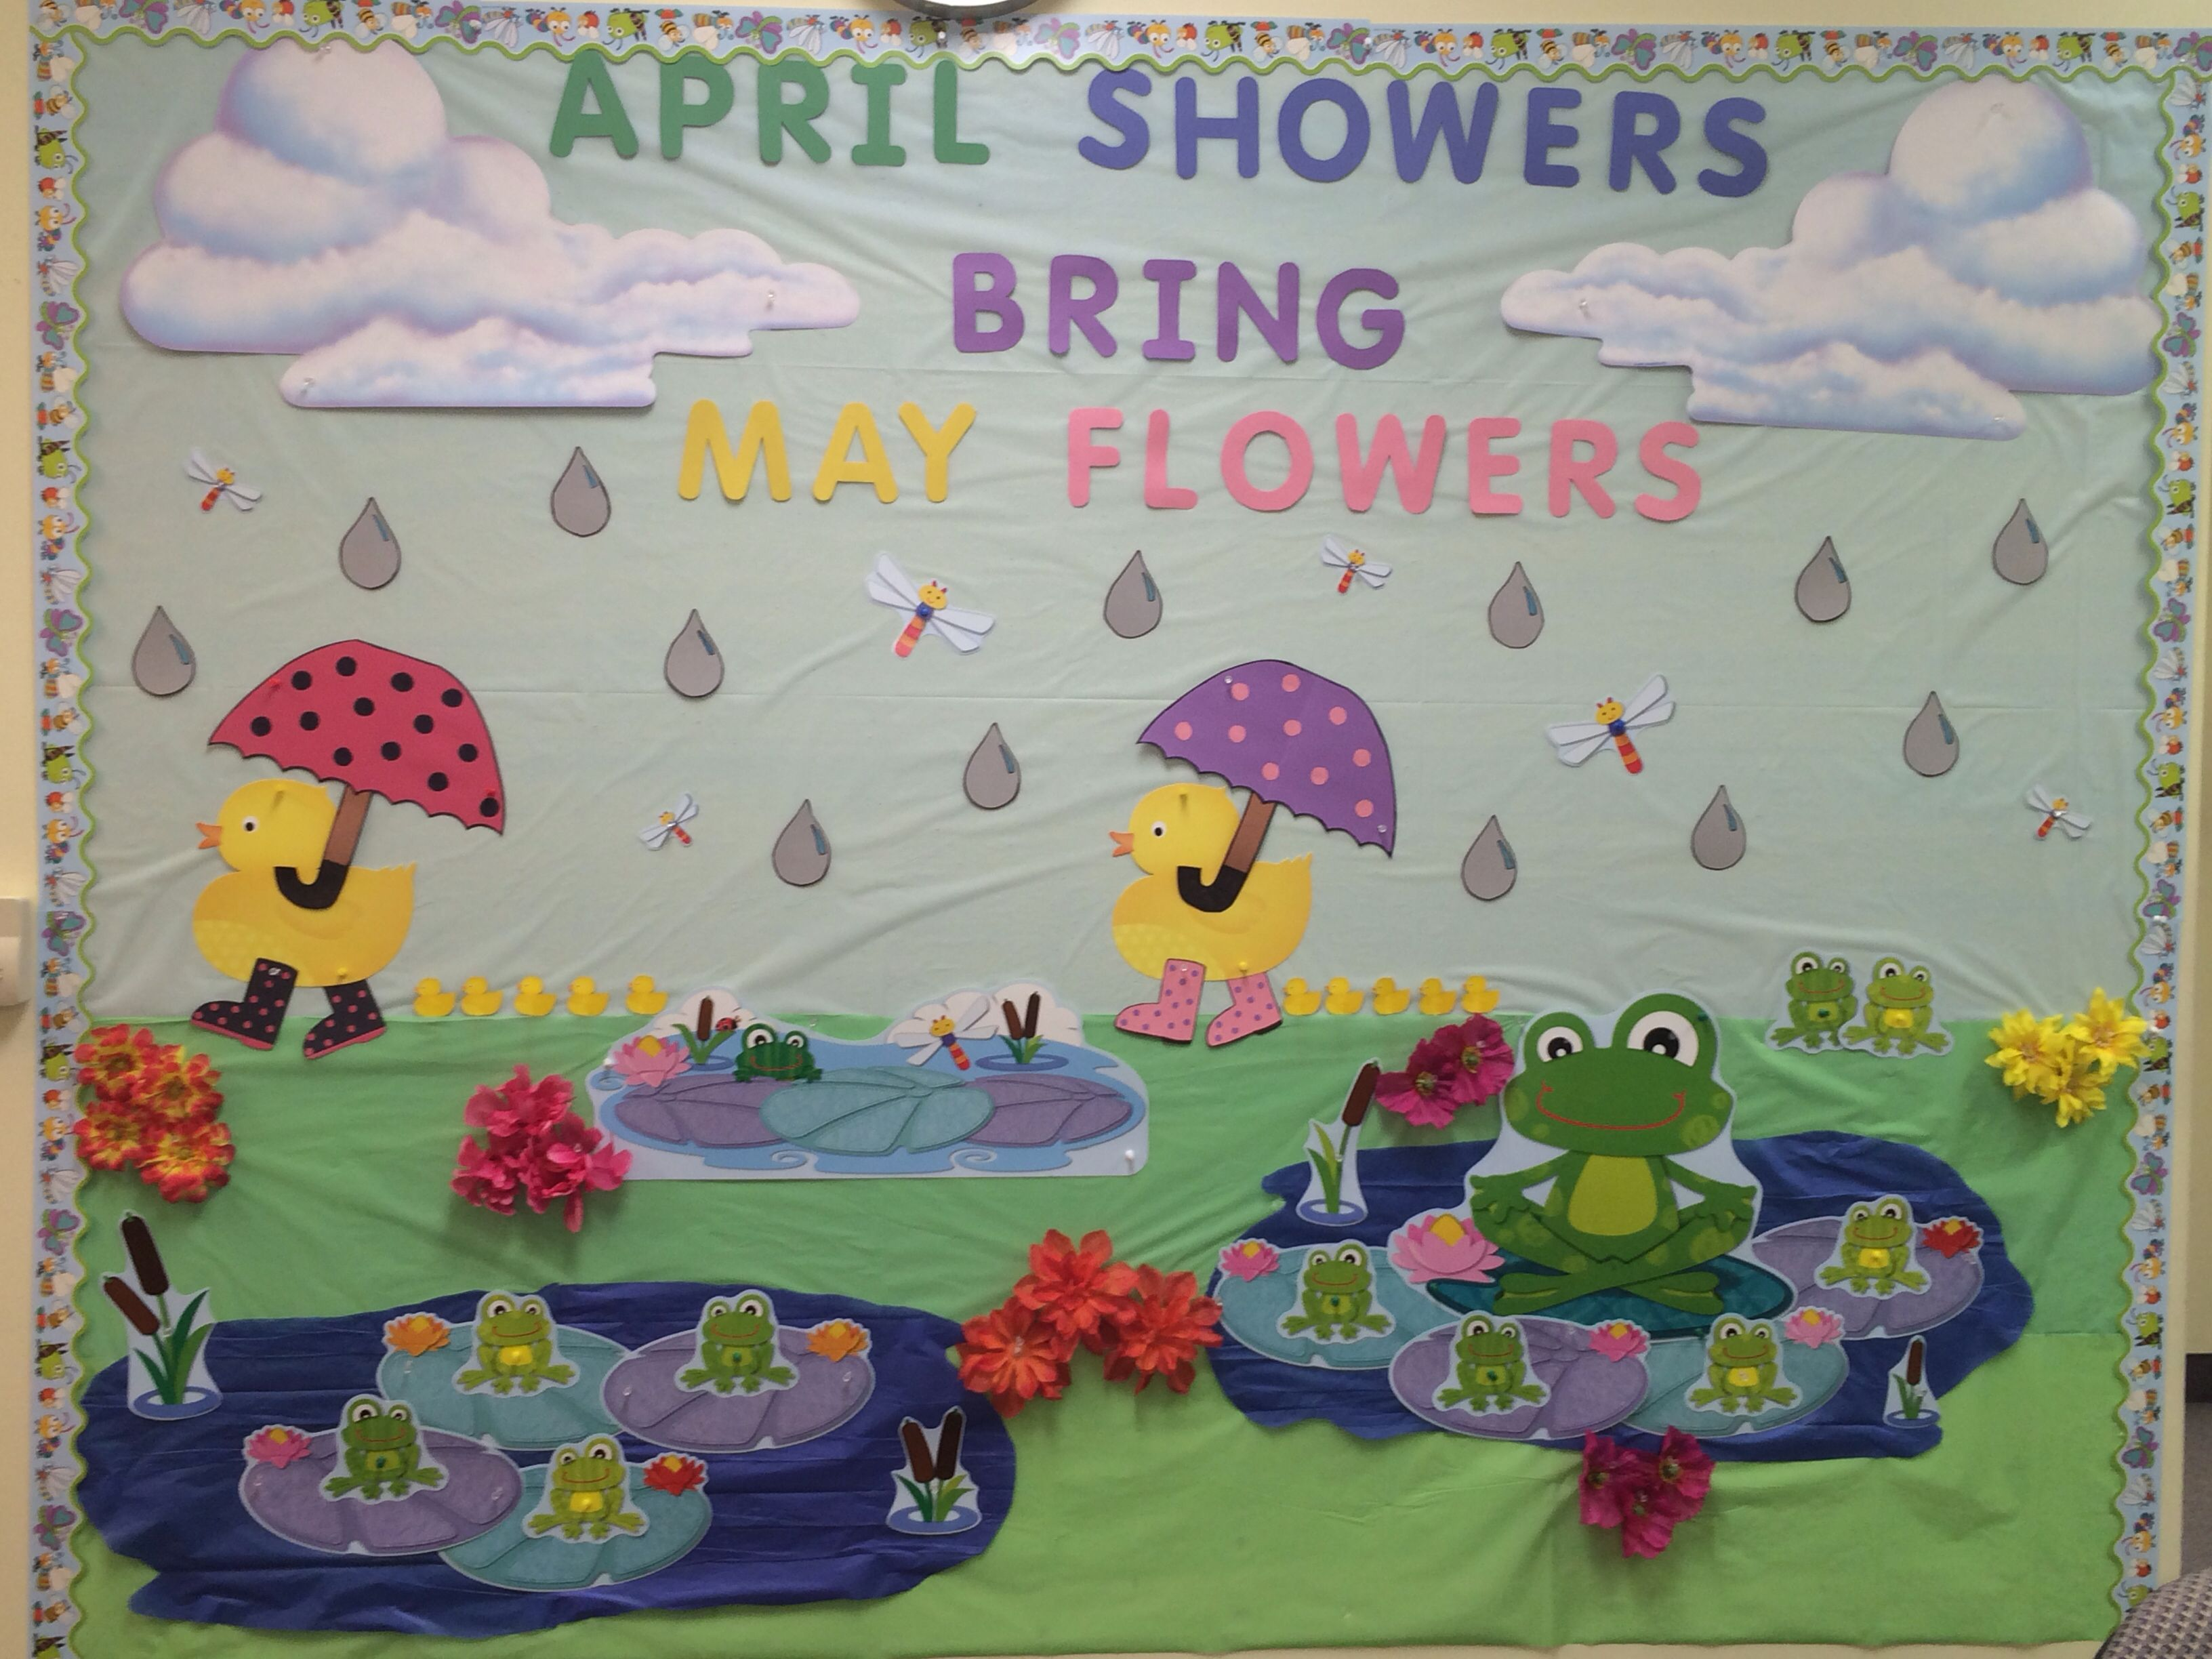 April Showers Brings May Flowers Decor Classroom Wall